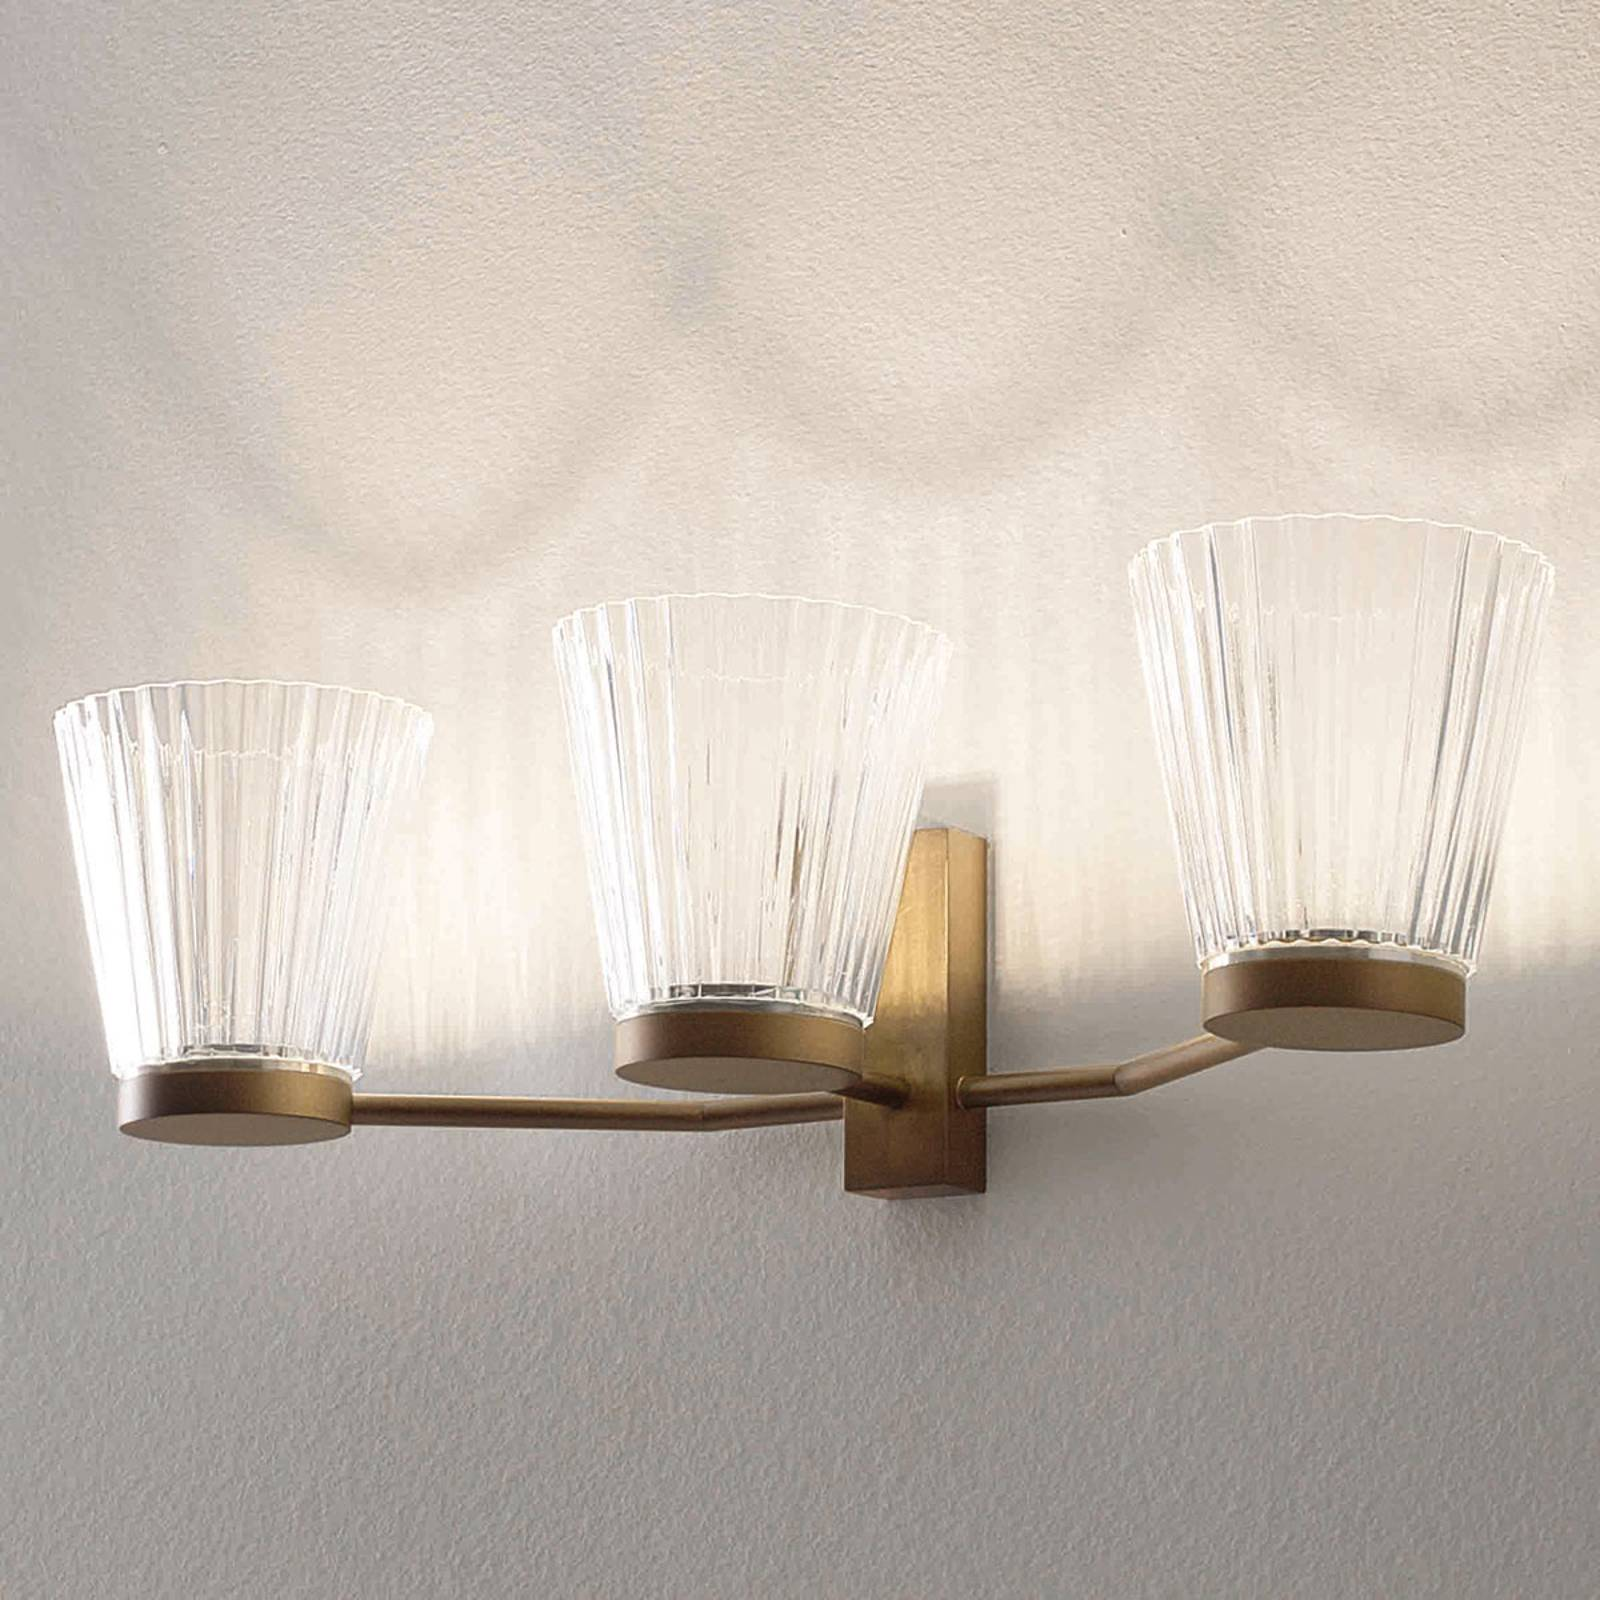 ICONE Canaletto - LED-Wandleuchte, bronze